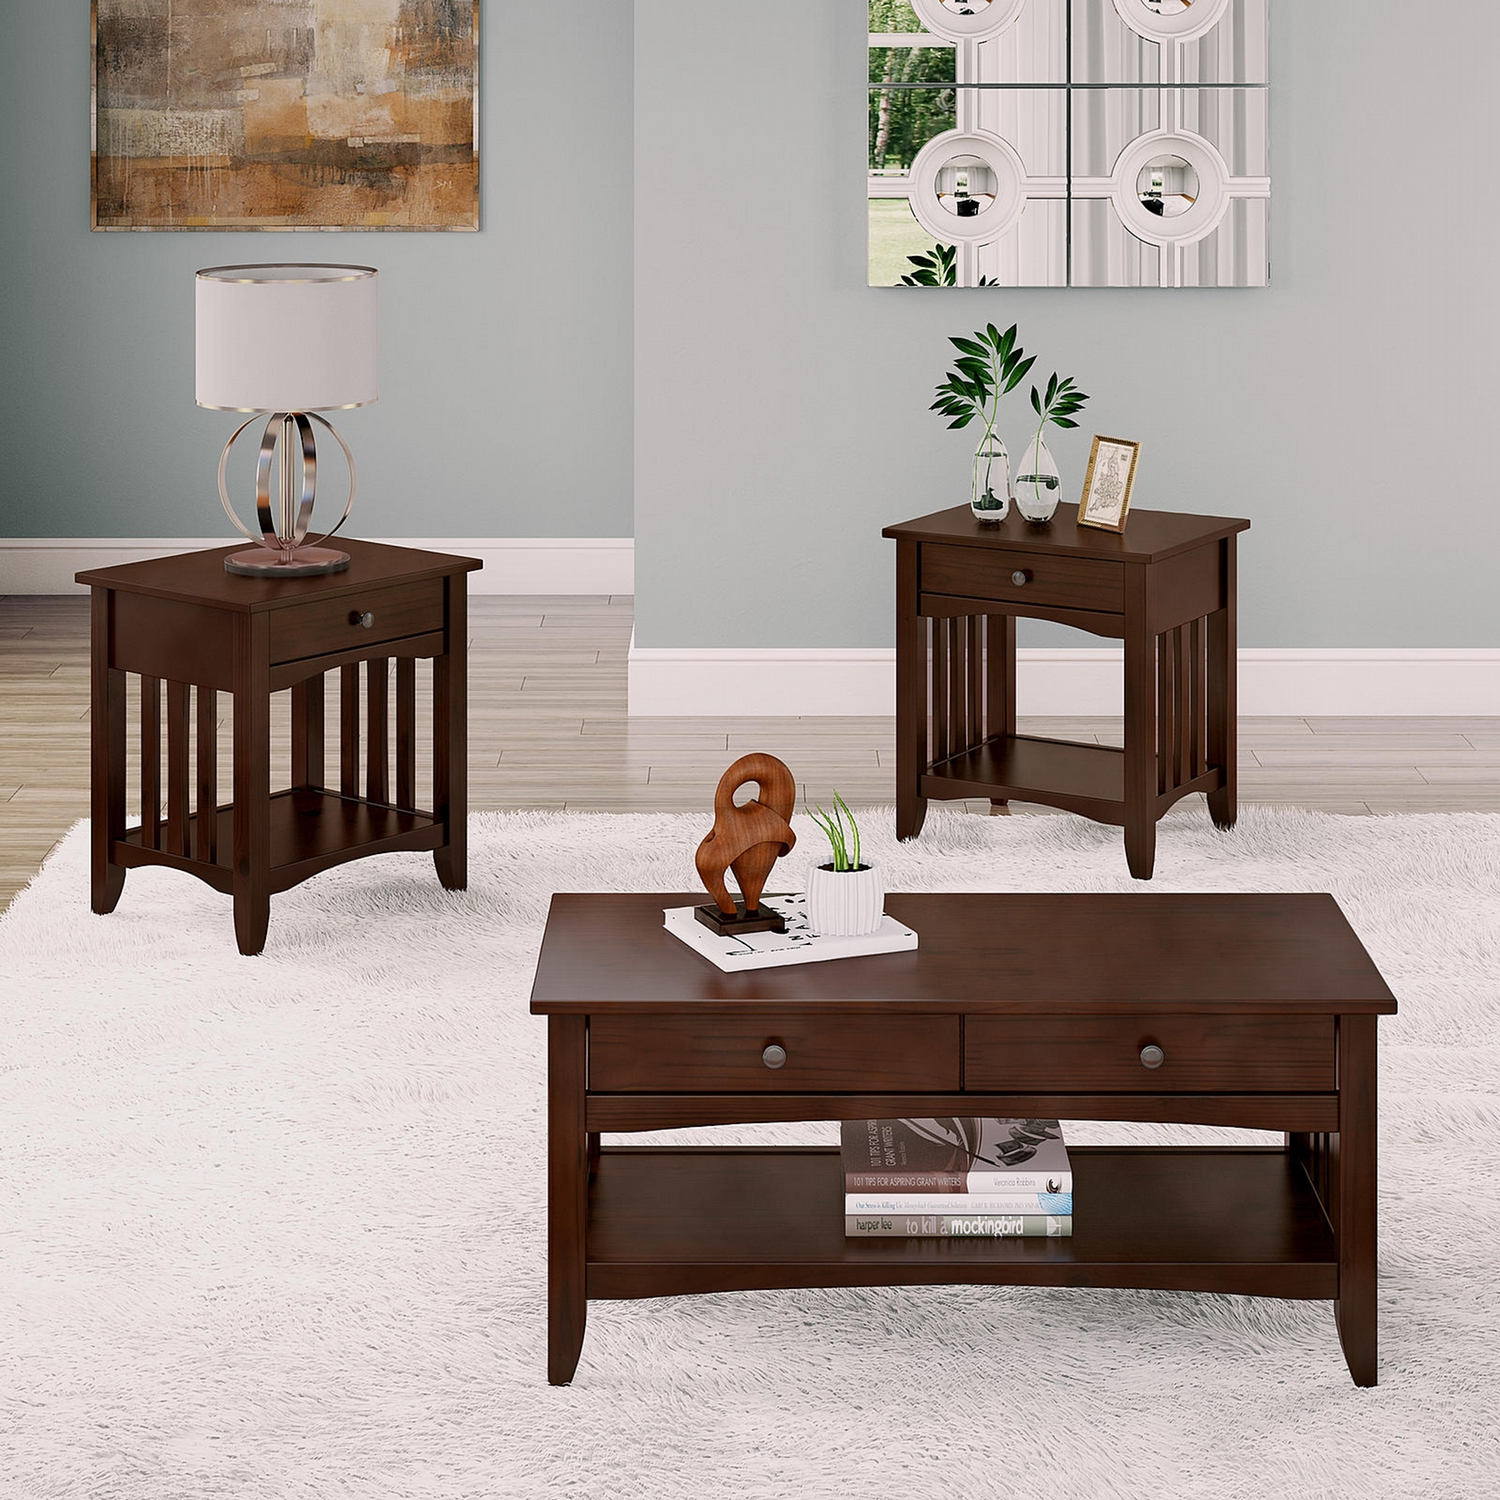 corliving crestway solid wood coffee table set with drawers get and end tables stanley white bedroom furniture riverside belmeade dining round nic leons steve silver troy cherry